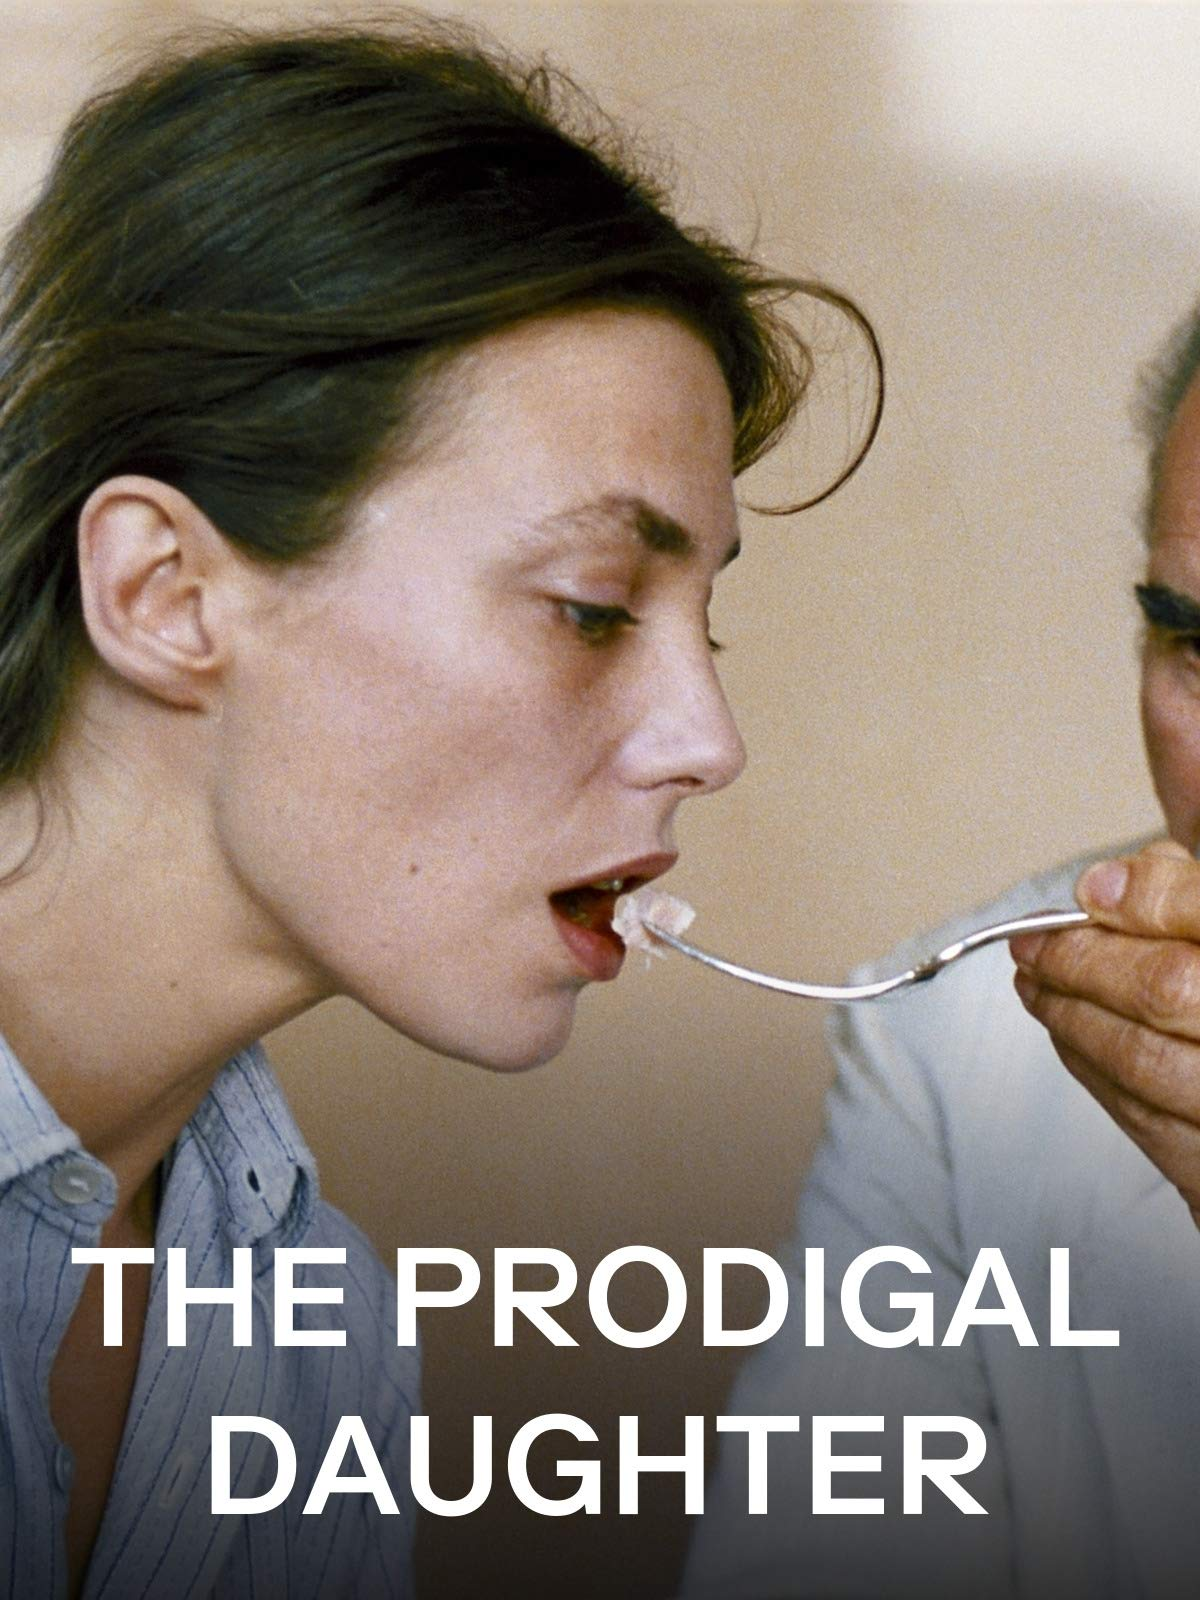 the prodigal daughter 1981 movie online free